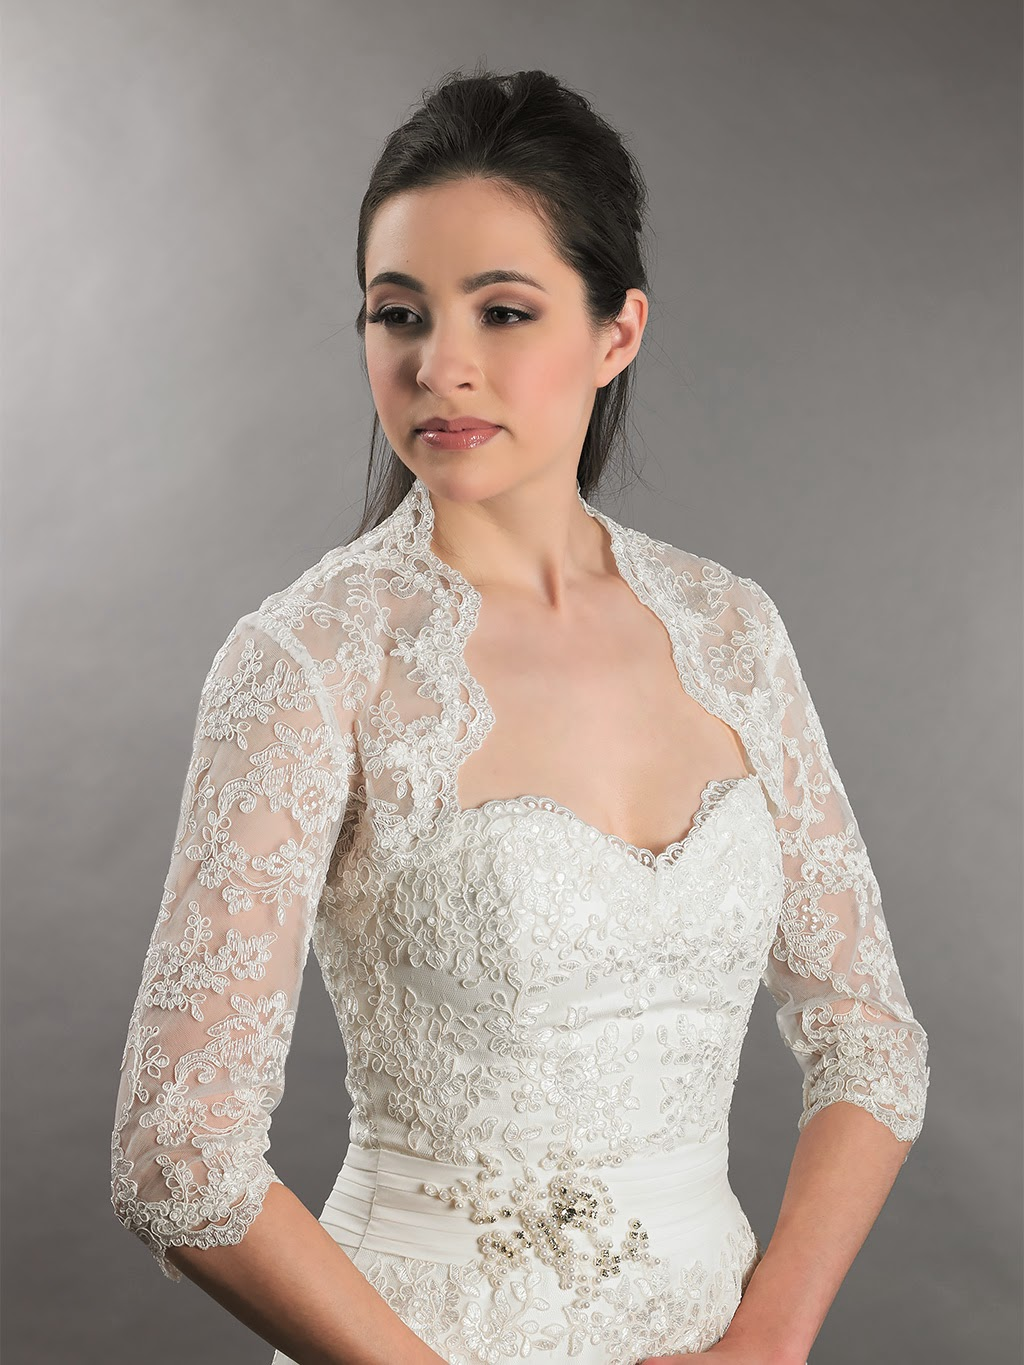 Happy wedding lace bolero designs 2015 fashionate trends for Wedding dress lace bolero